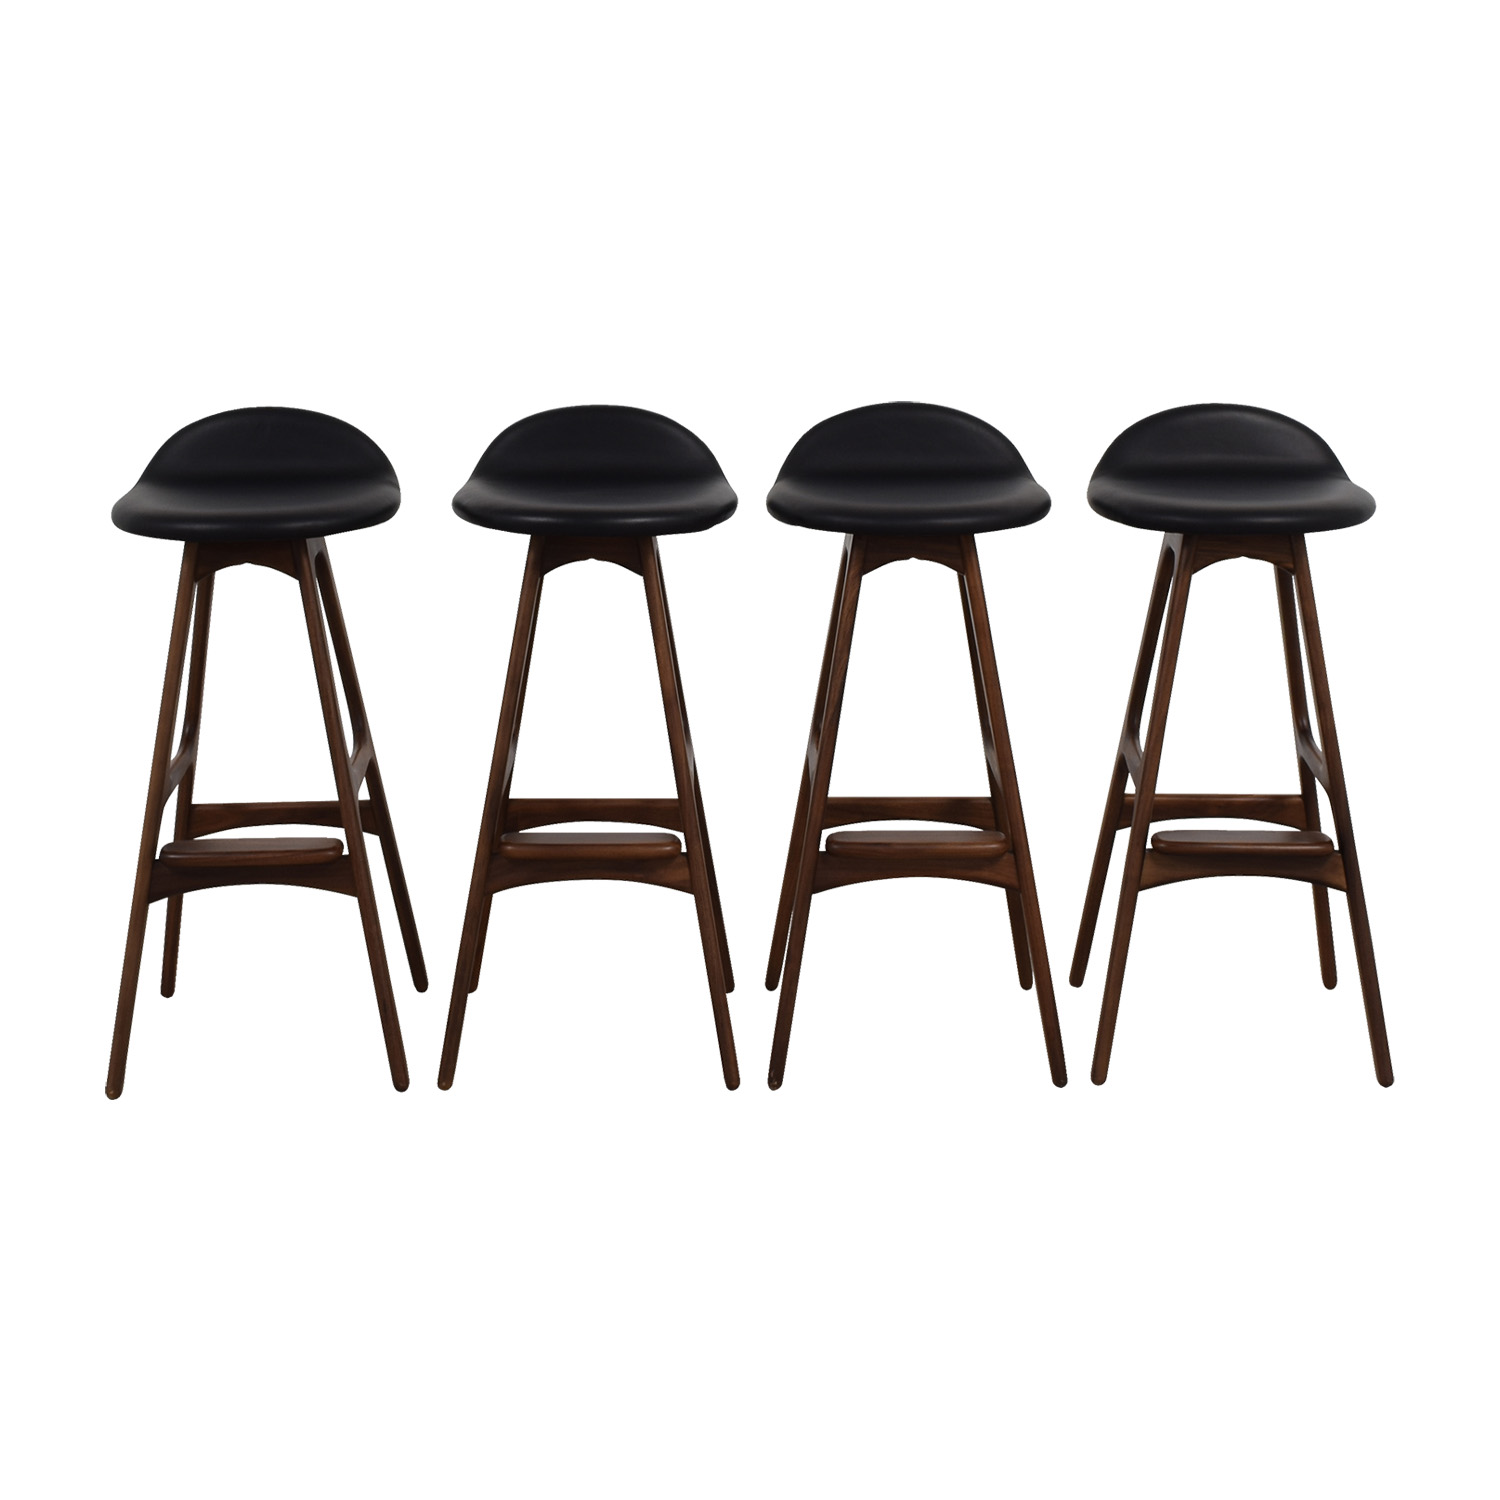 Erik Buch Walnut and Leather Bar Stools second hand